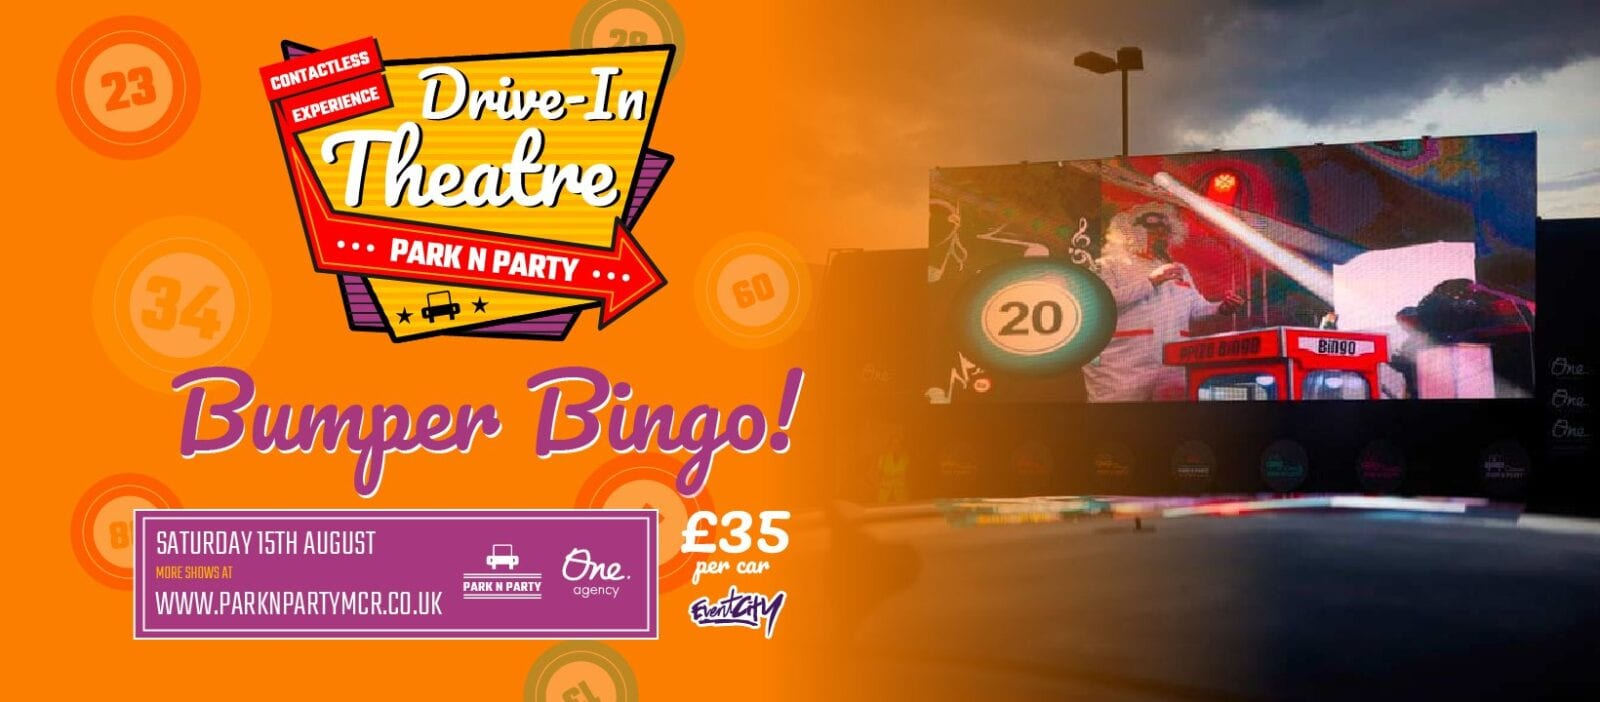 A massive drive-in Bumper Bingo event is coming to Manchester this weekend, The Manc